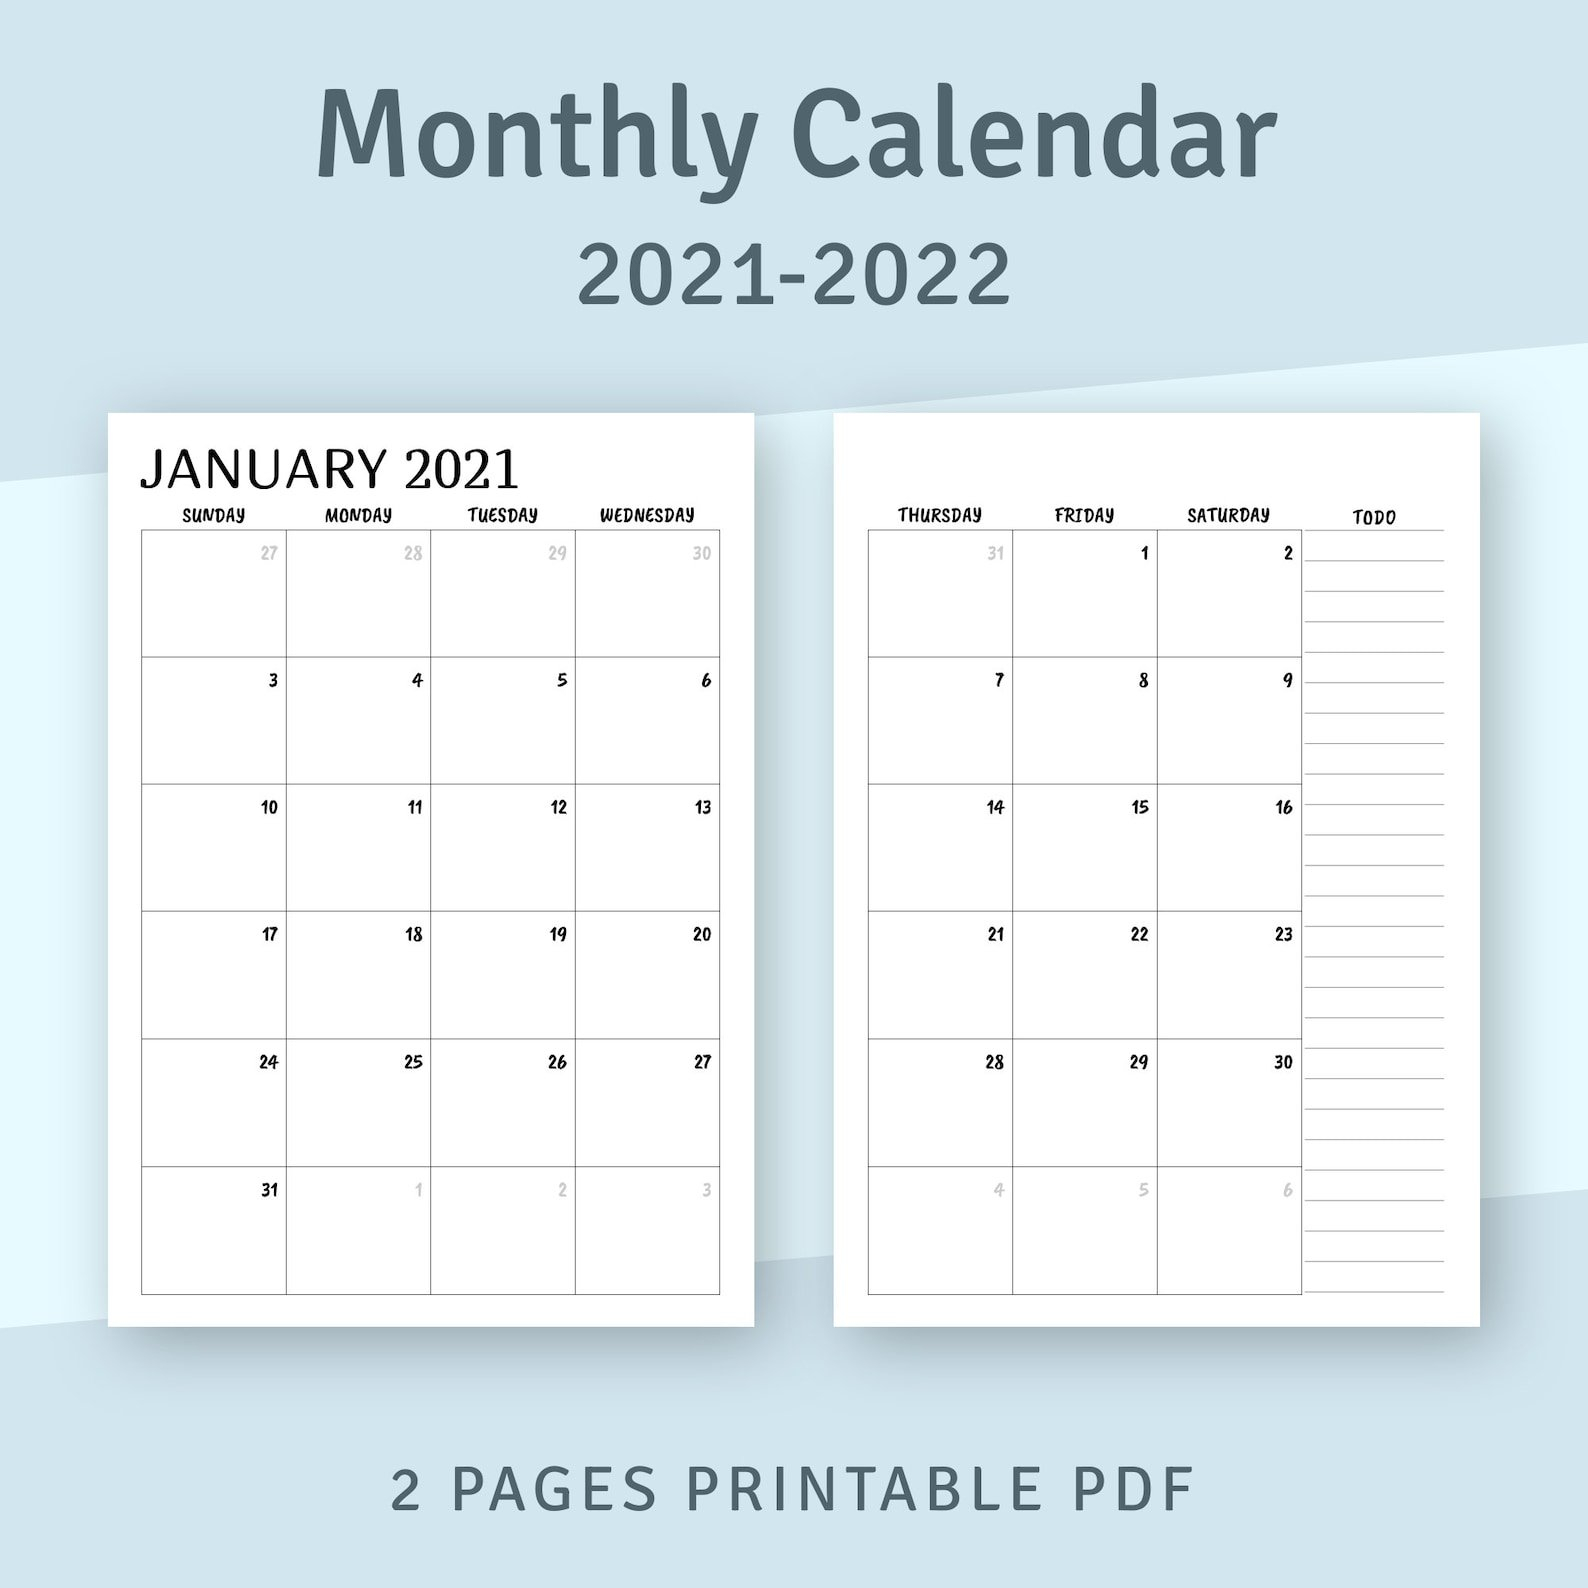 Printable Calendar Monthly 2021 2022 Month On Two Page   Etsy regarding Printable Monthly Planner Pages 2022